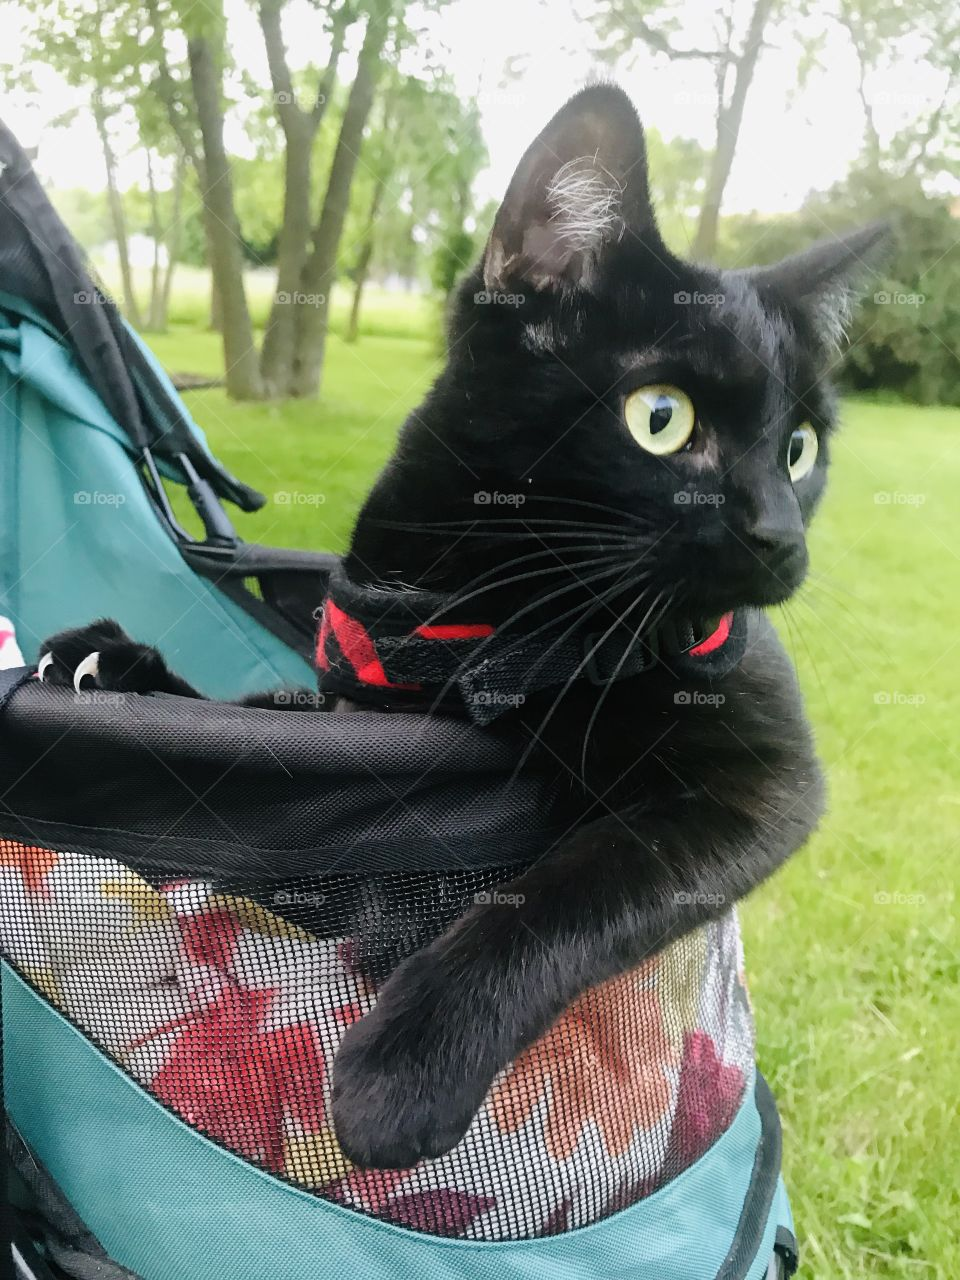 Darling little black kitty sitting in her stroller with her harness on ready for an evening ride!!